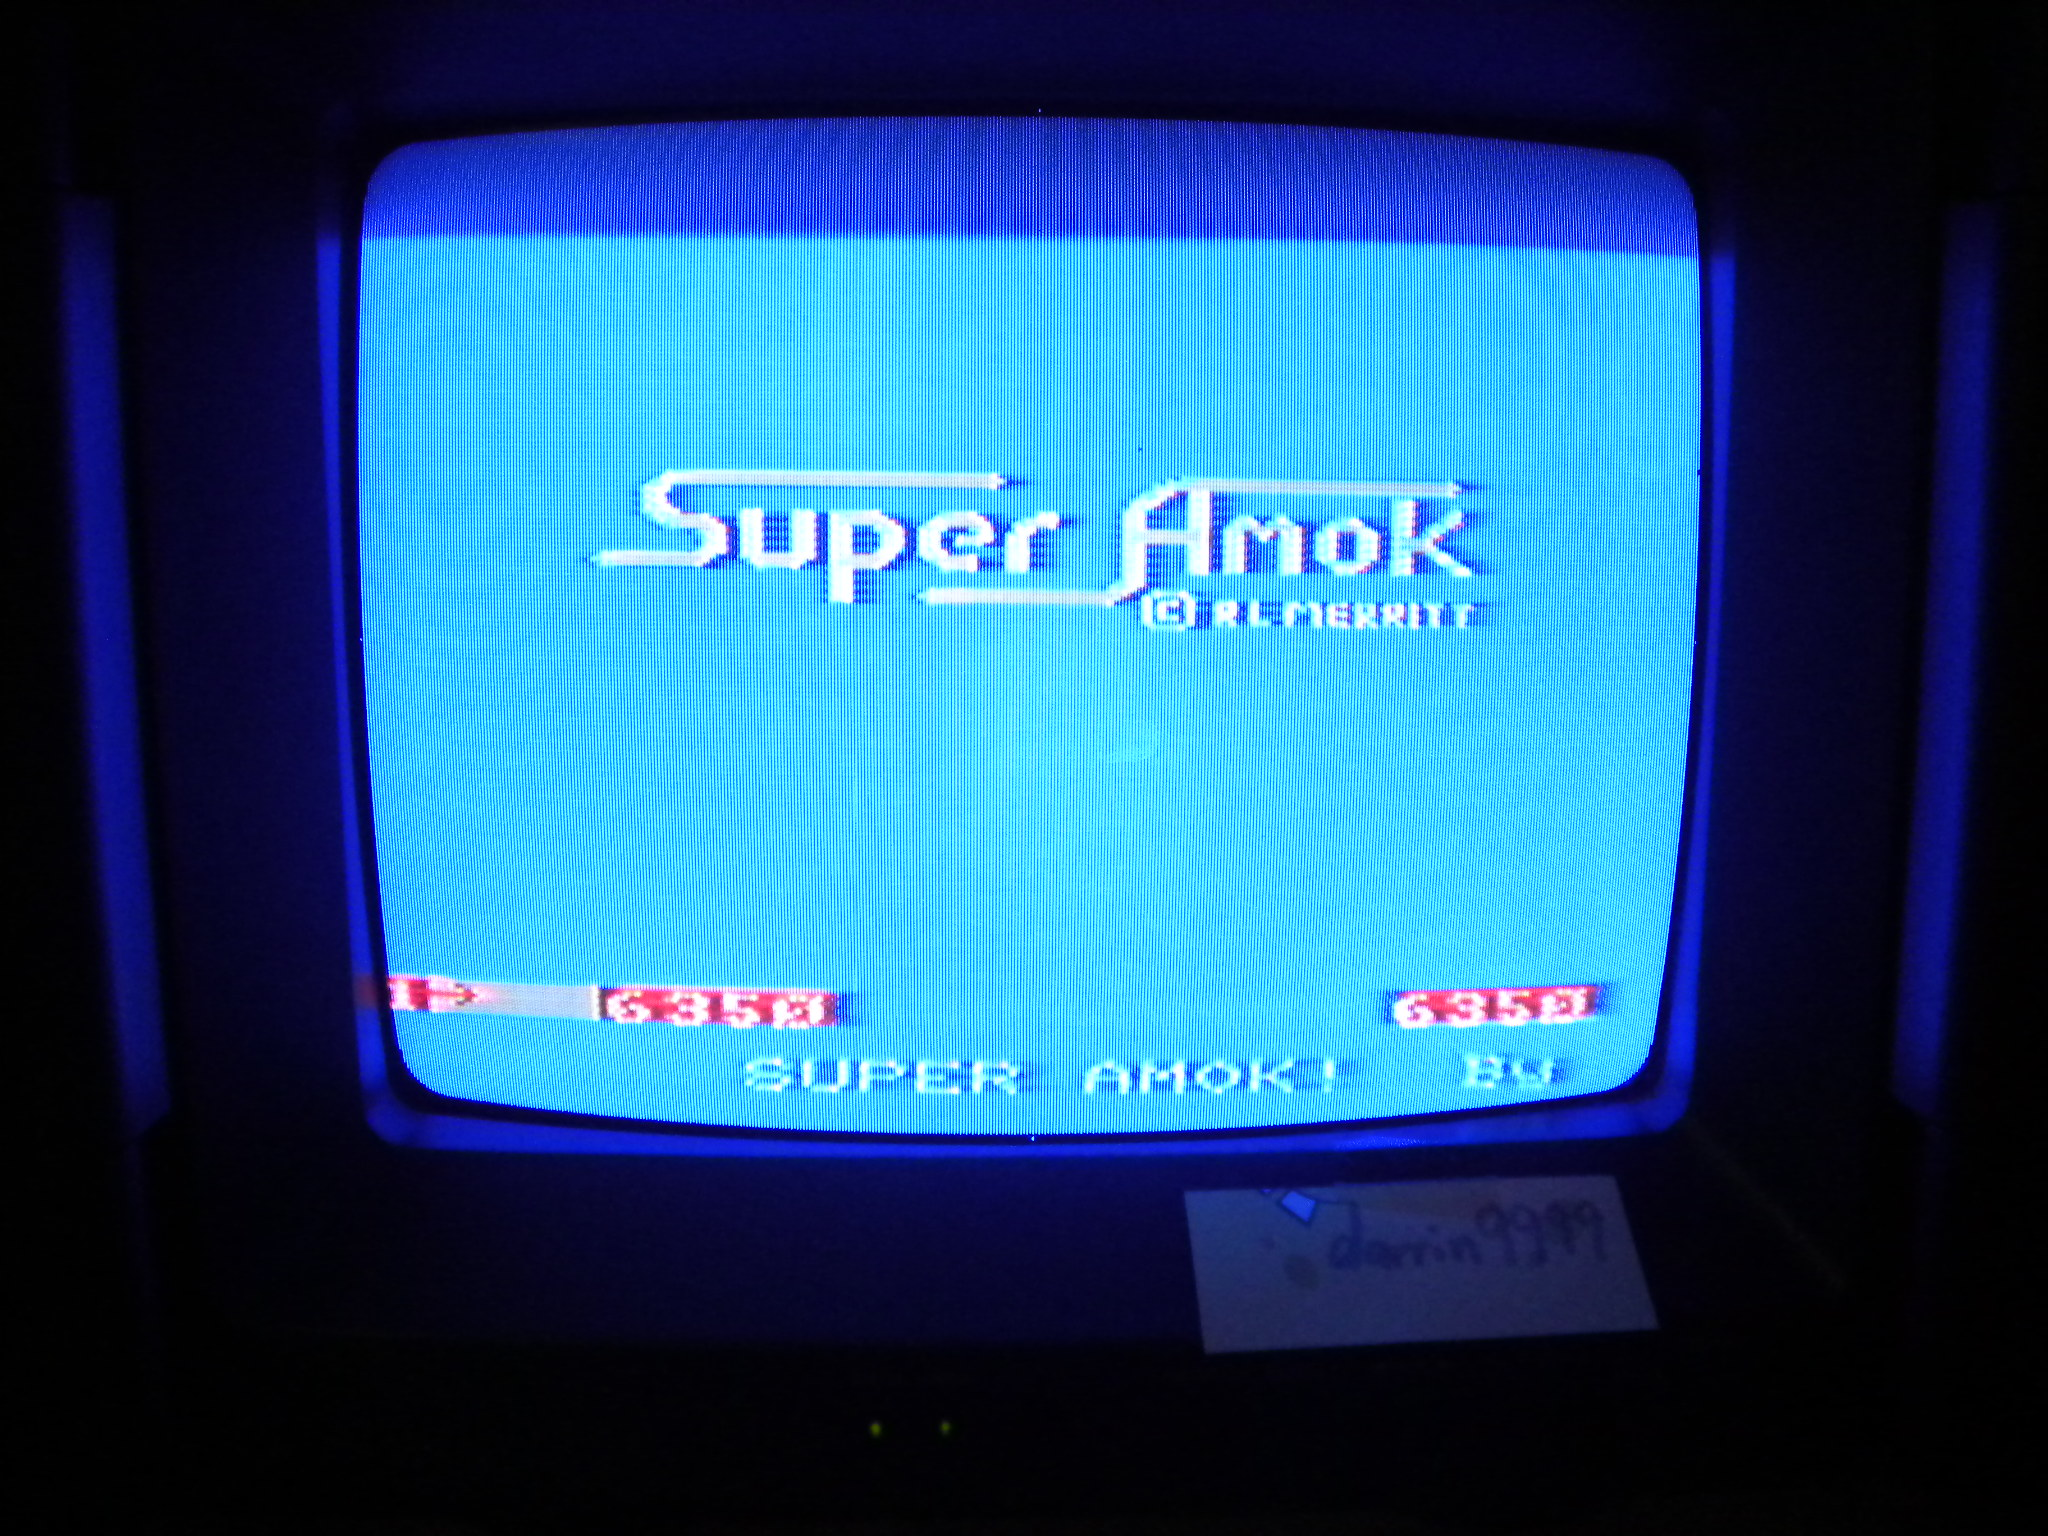 Super Amok 6,350 points